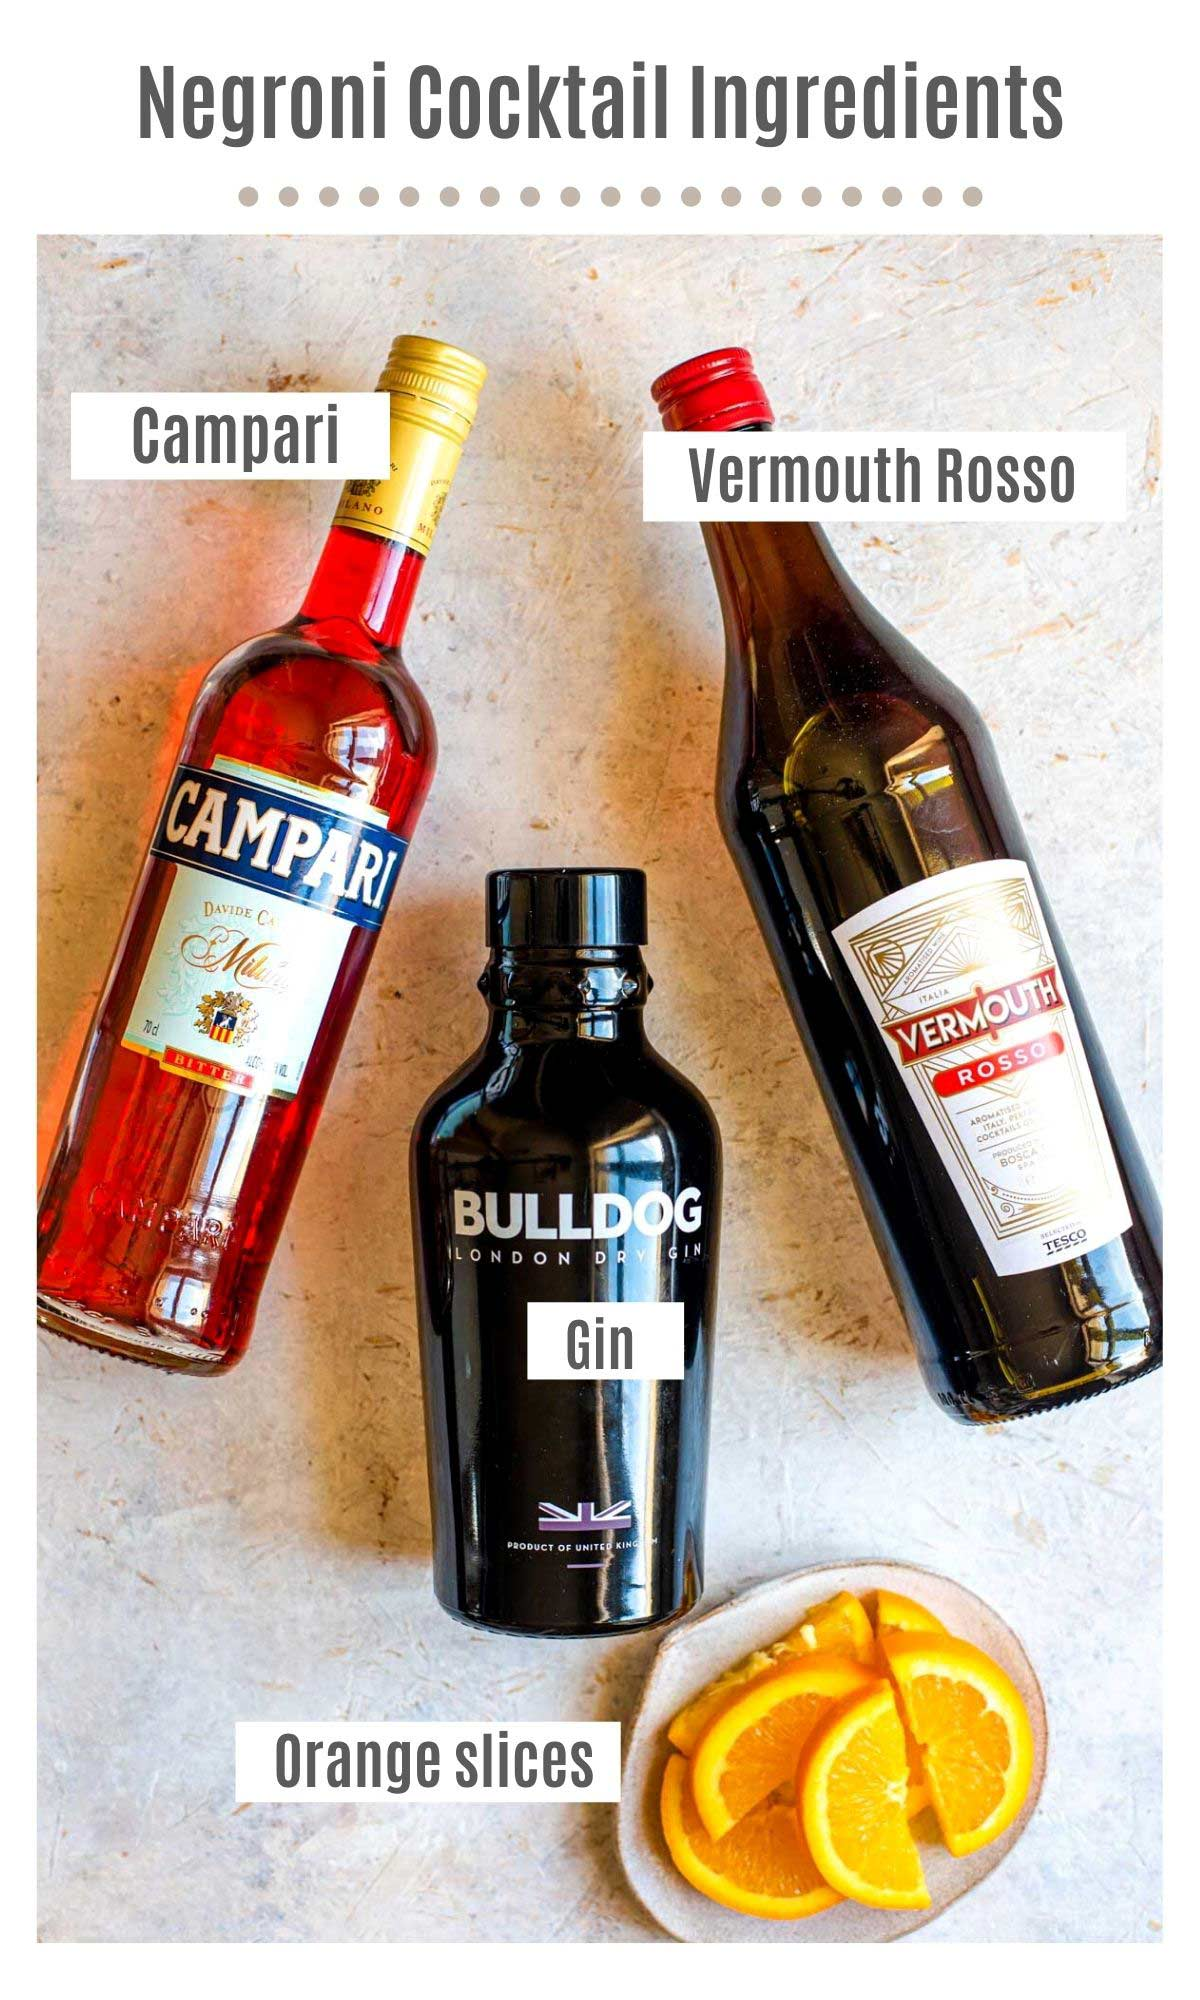 An overhead shot of all the ingredients you need to make a negroni cocktail